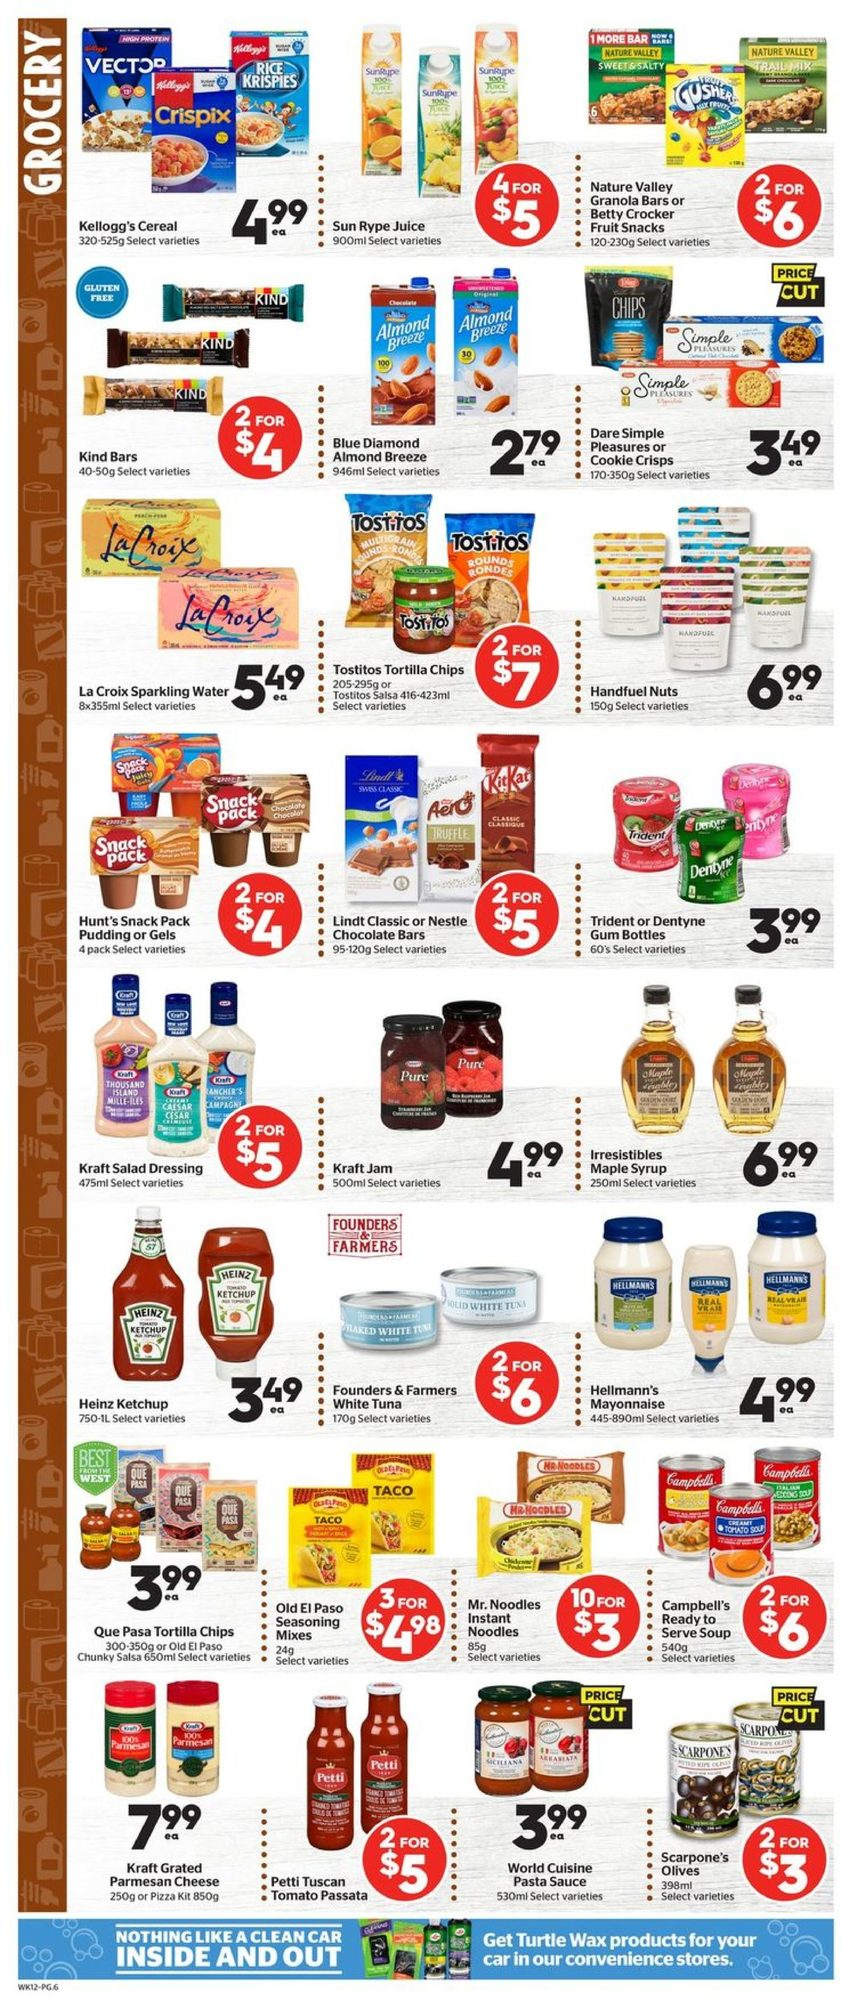 Calgary Co-op - Weekly Flyer Specials - Page 6